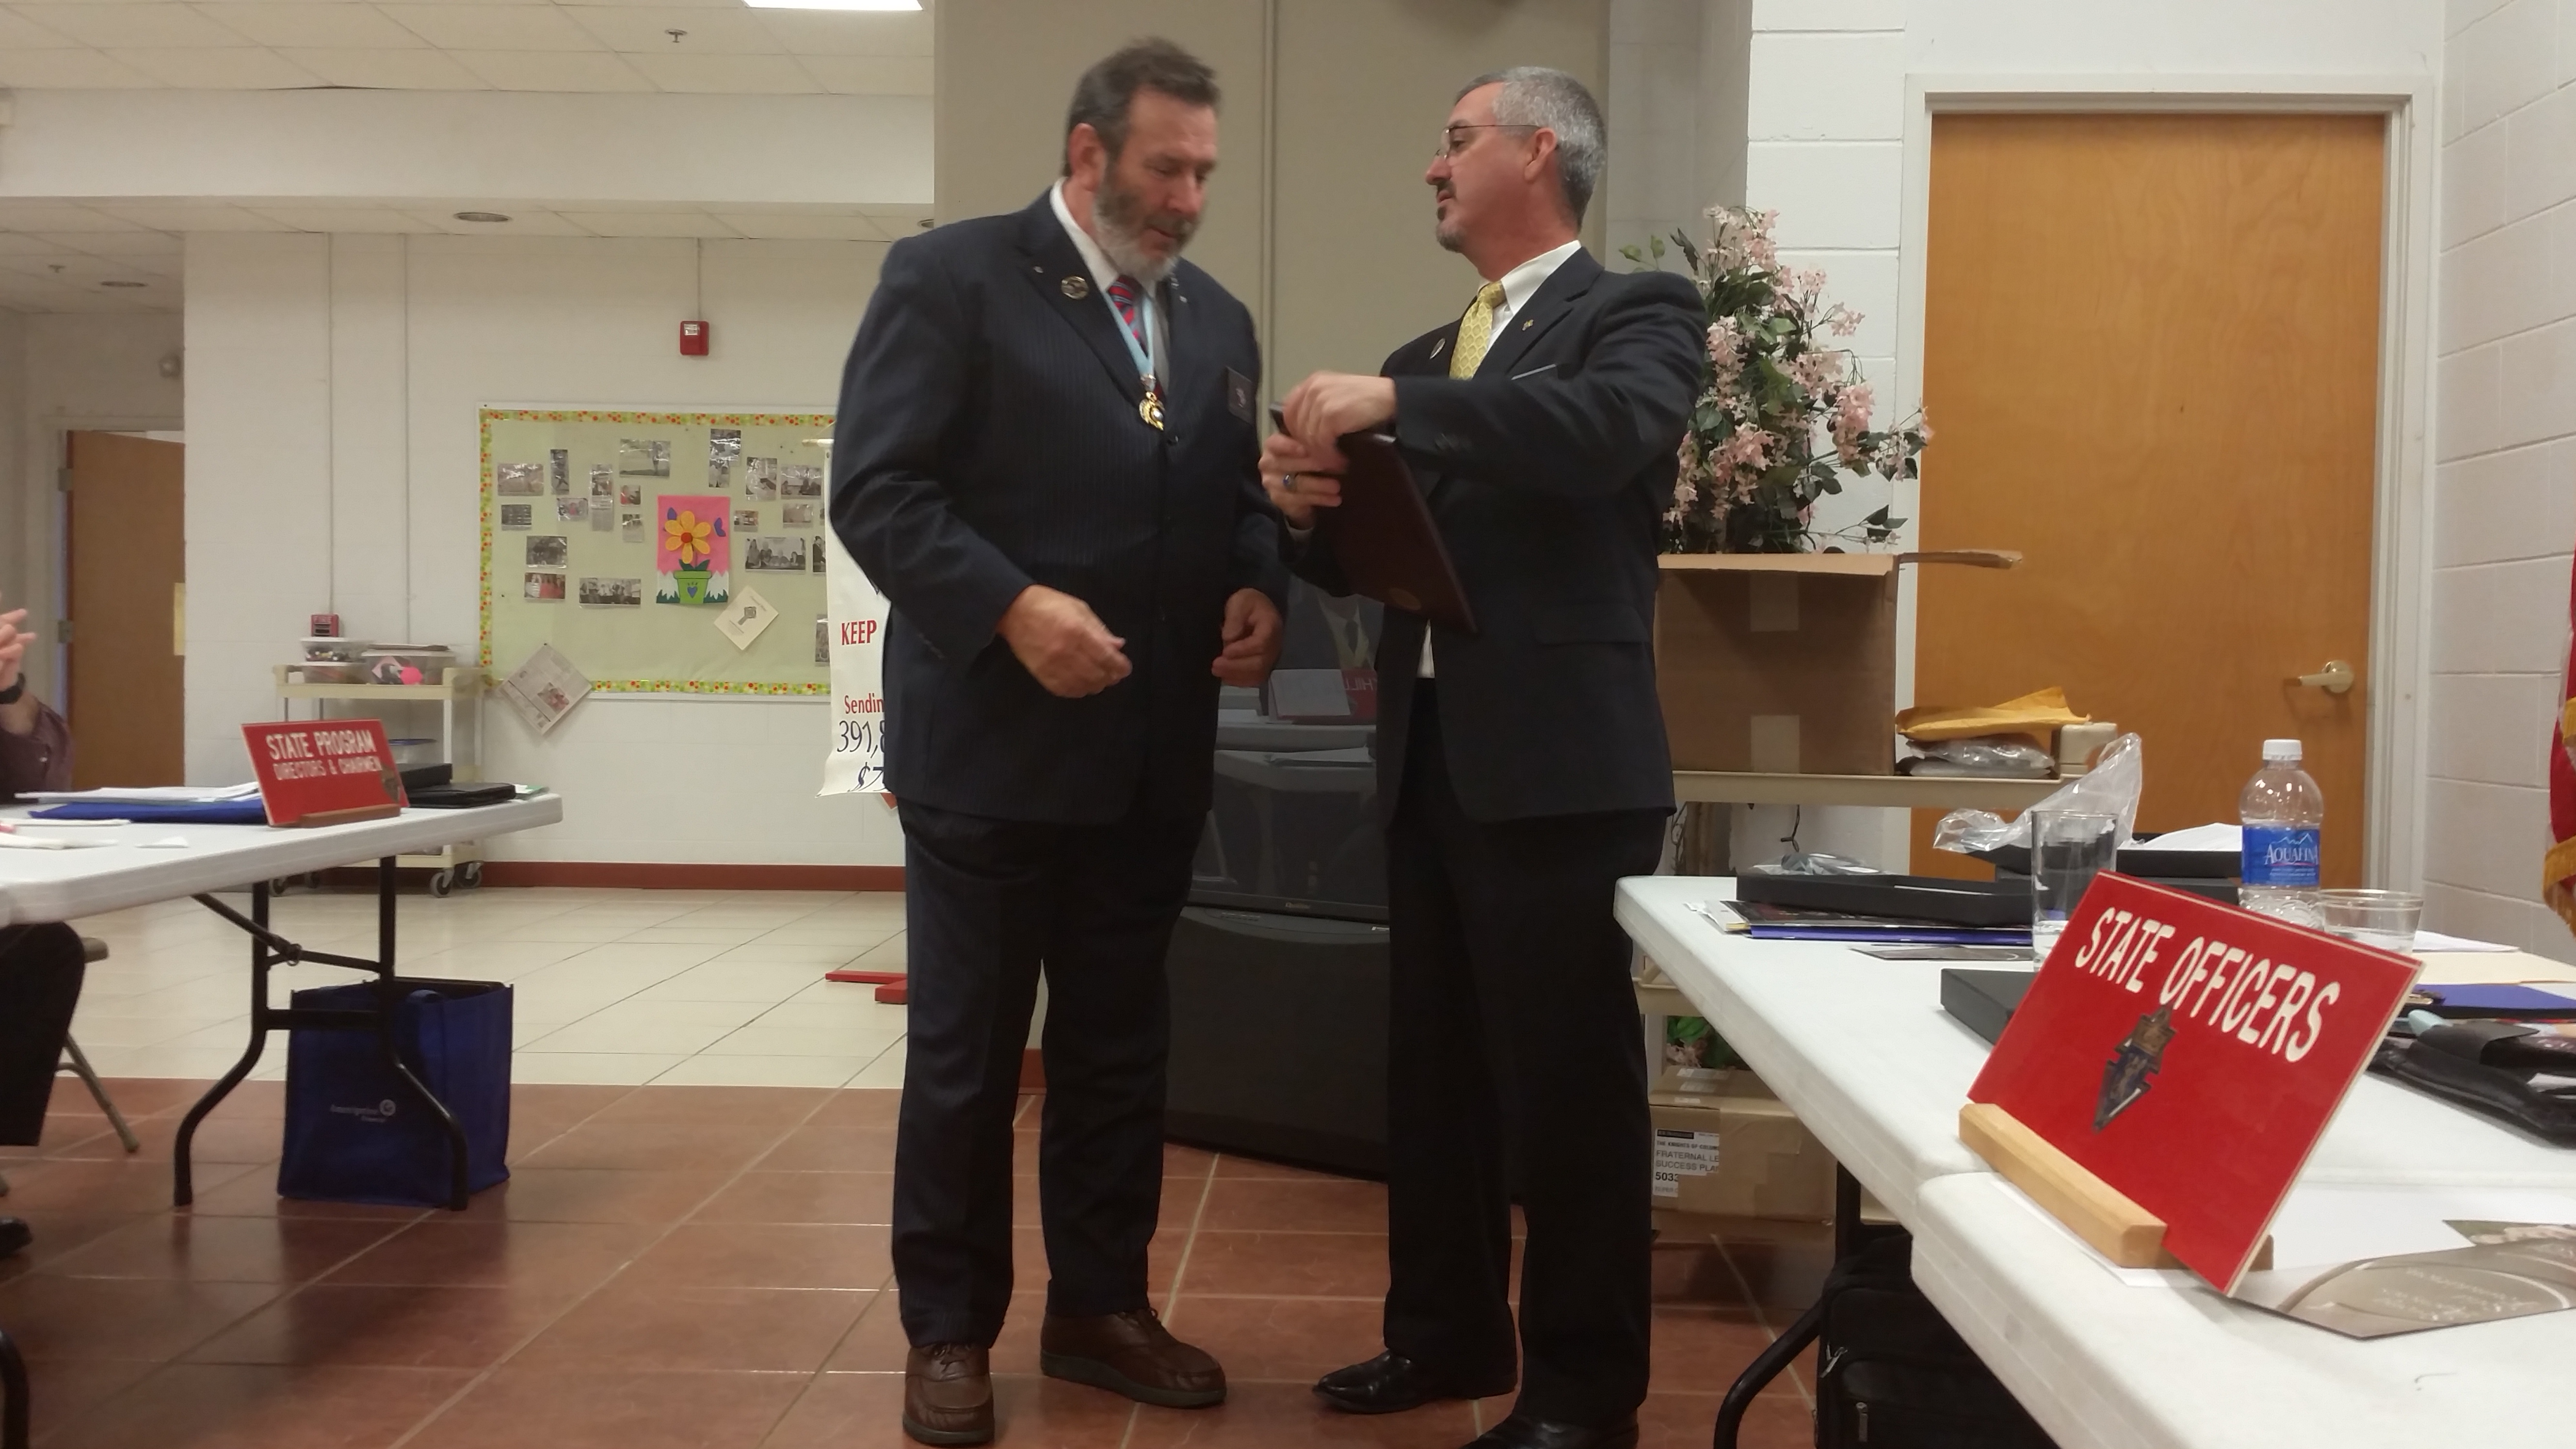 State Warden Mike Stanger  2015 WV Knights of Columbus 12191 Star Council Award